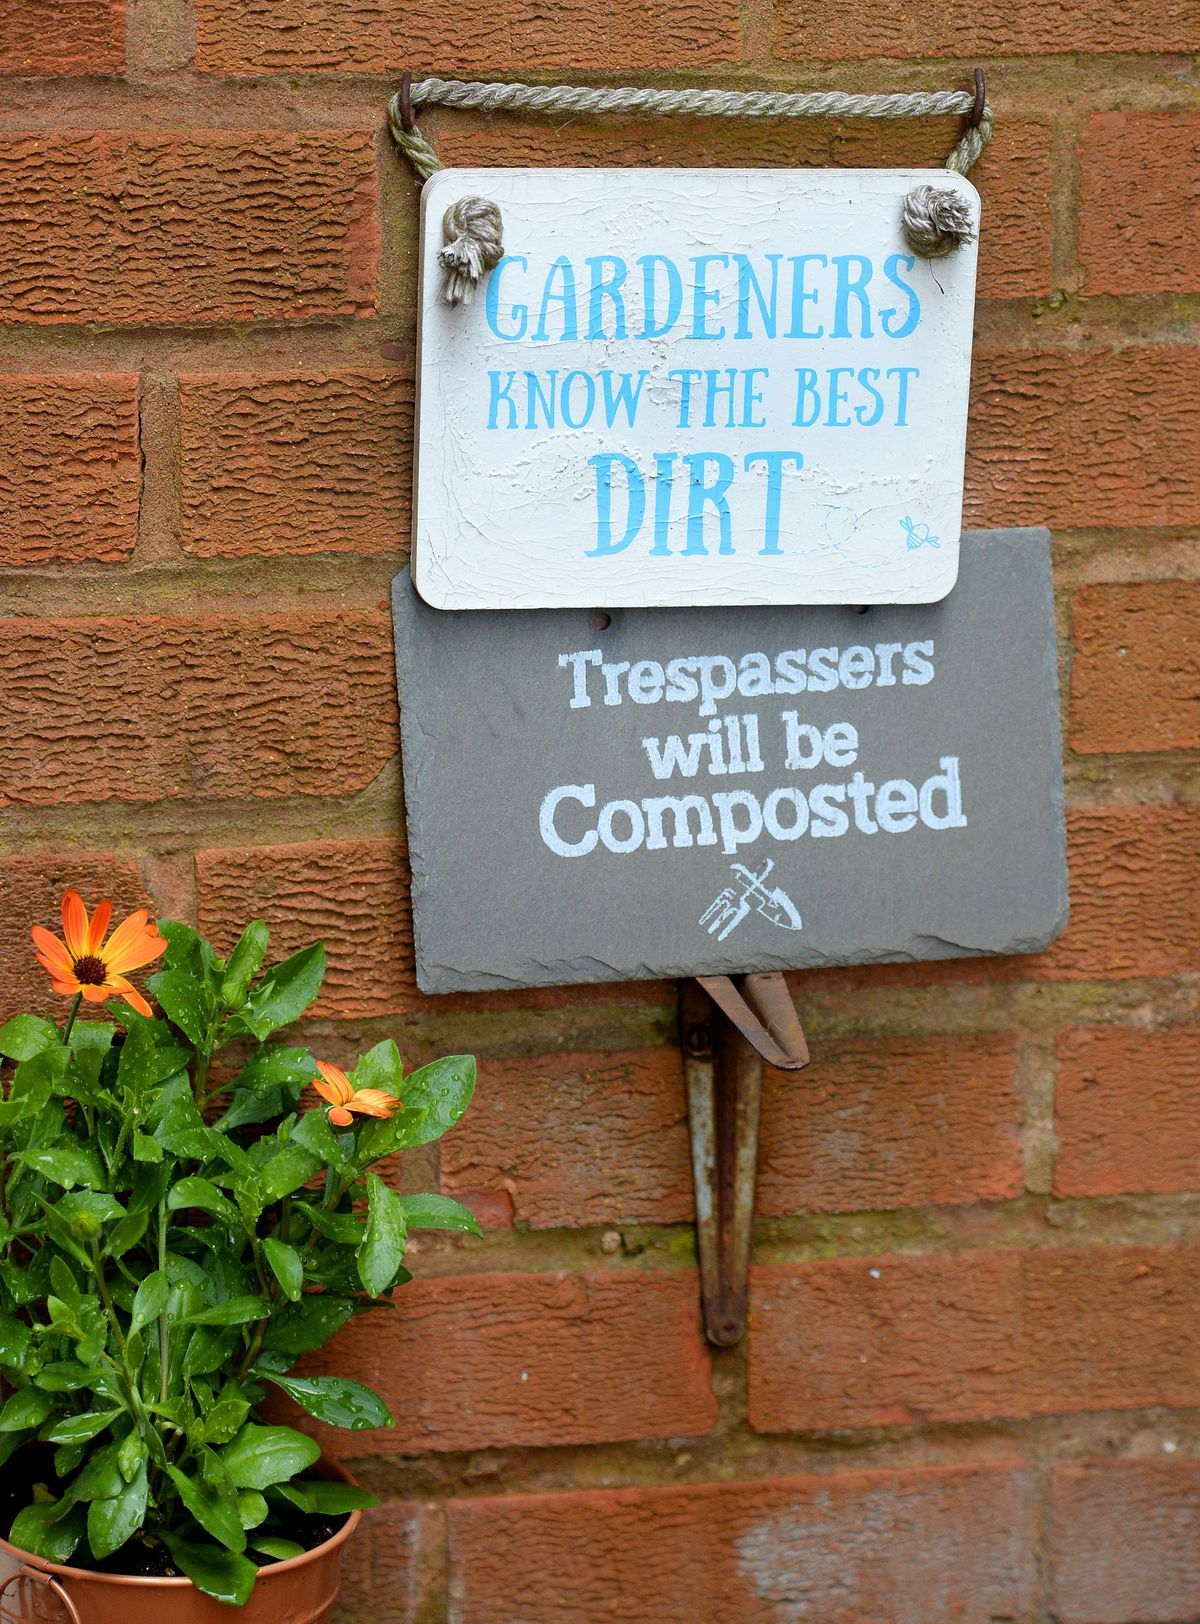 Mick says he takes a 'common sense' approach to gardening